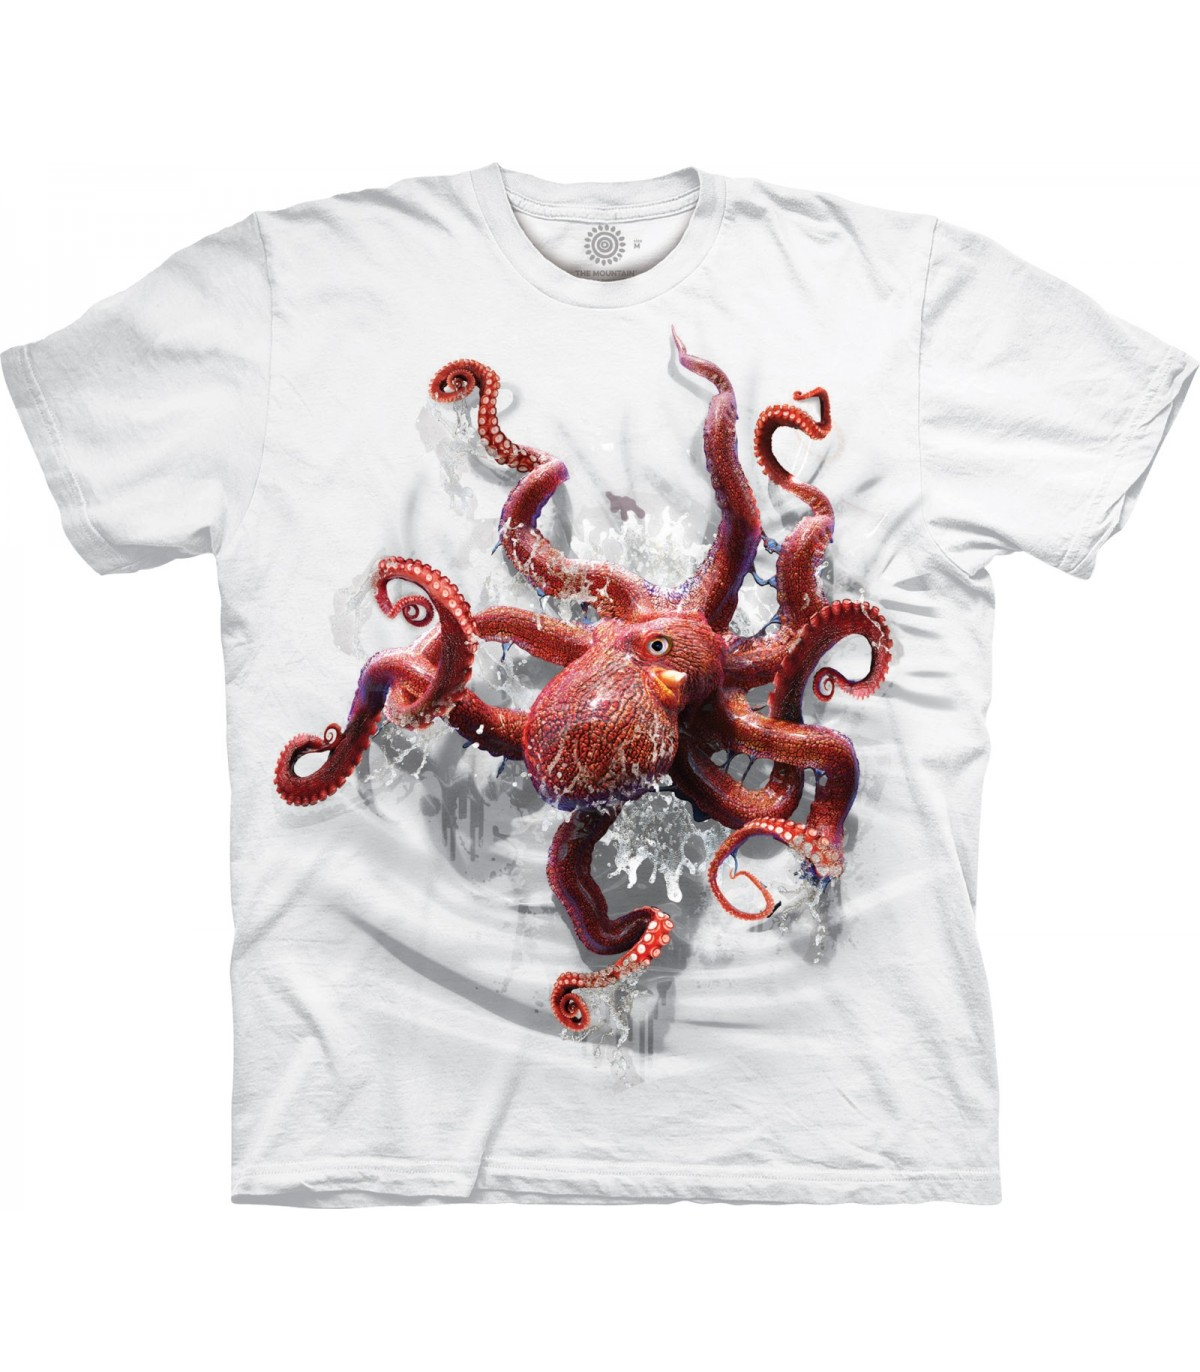 ad198d1f The Mountain Octopus Climb Special Edition White T Shirt